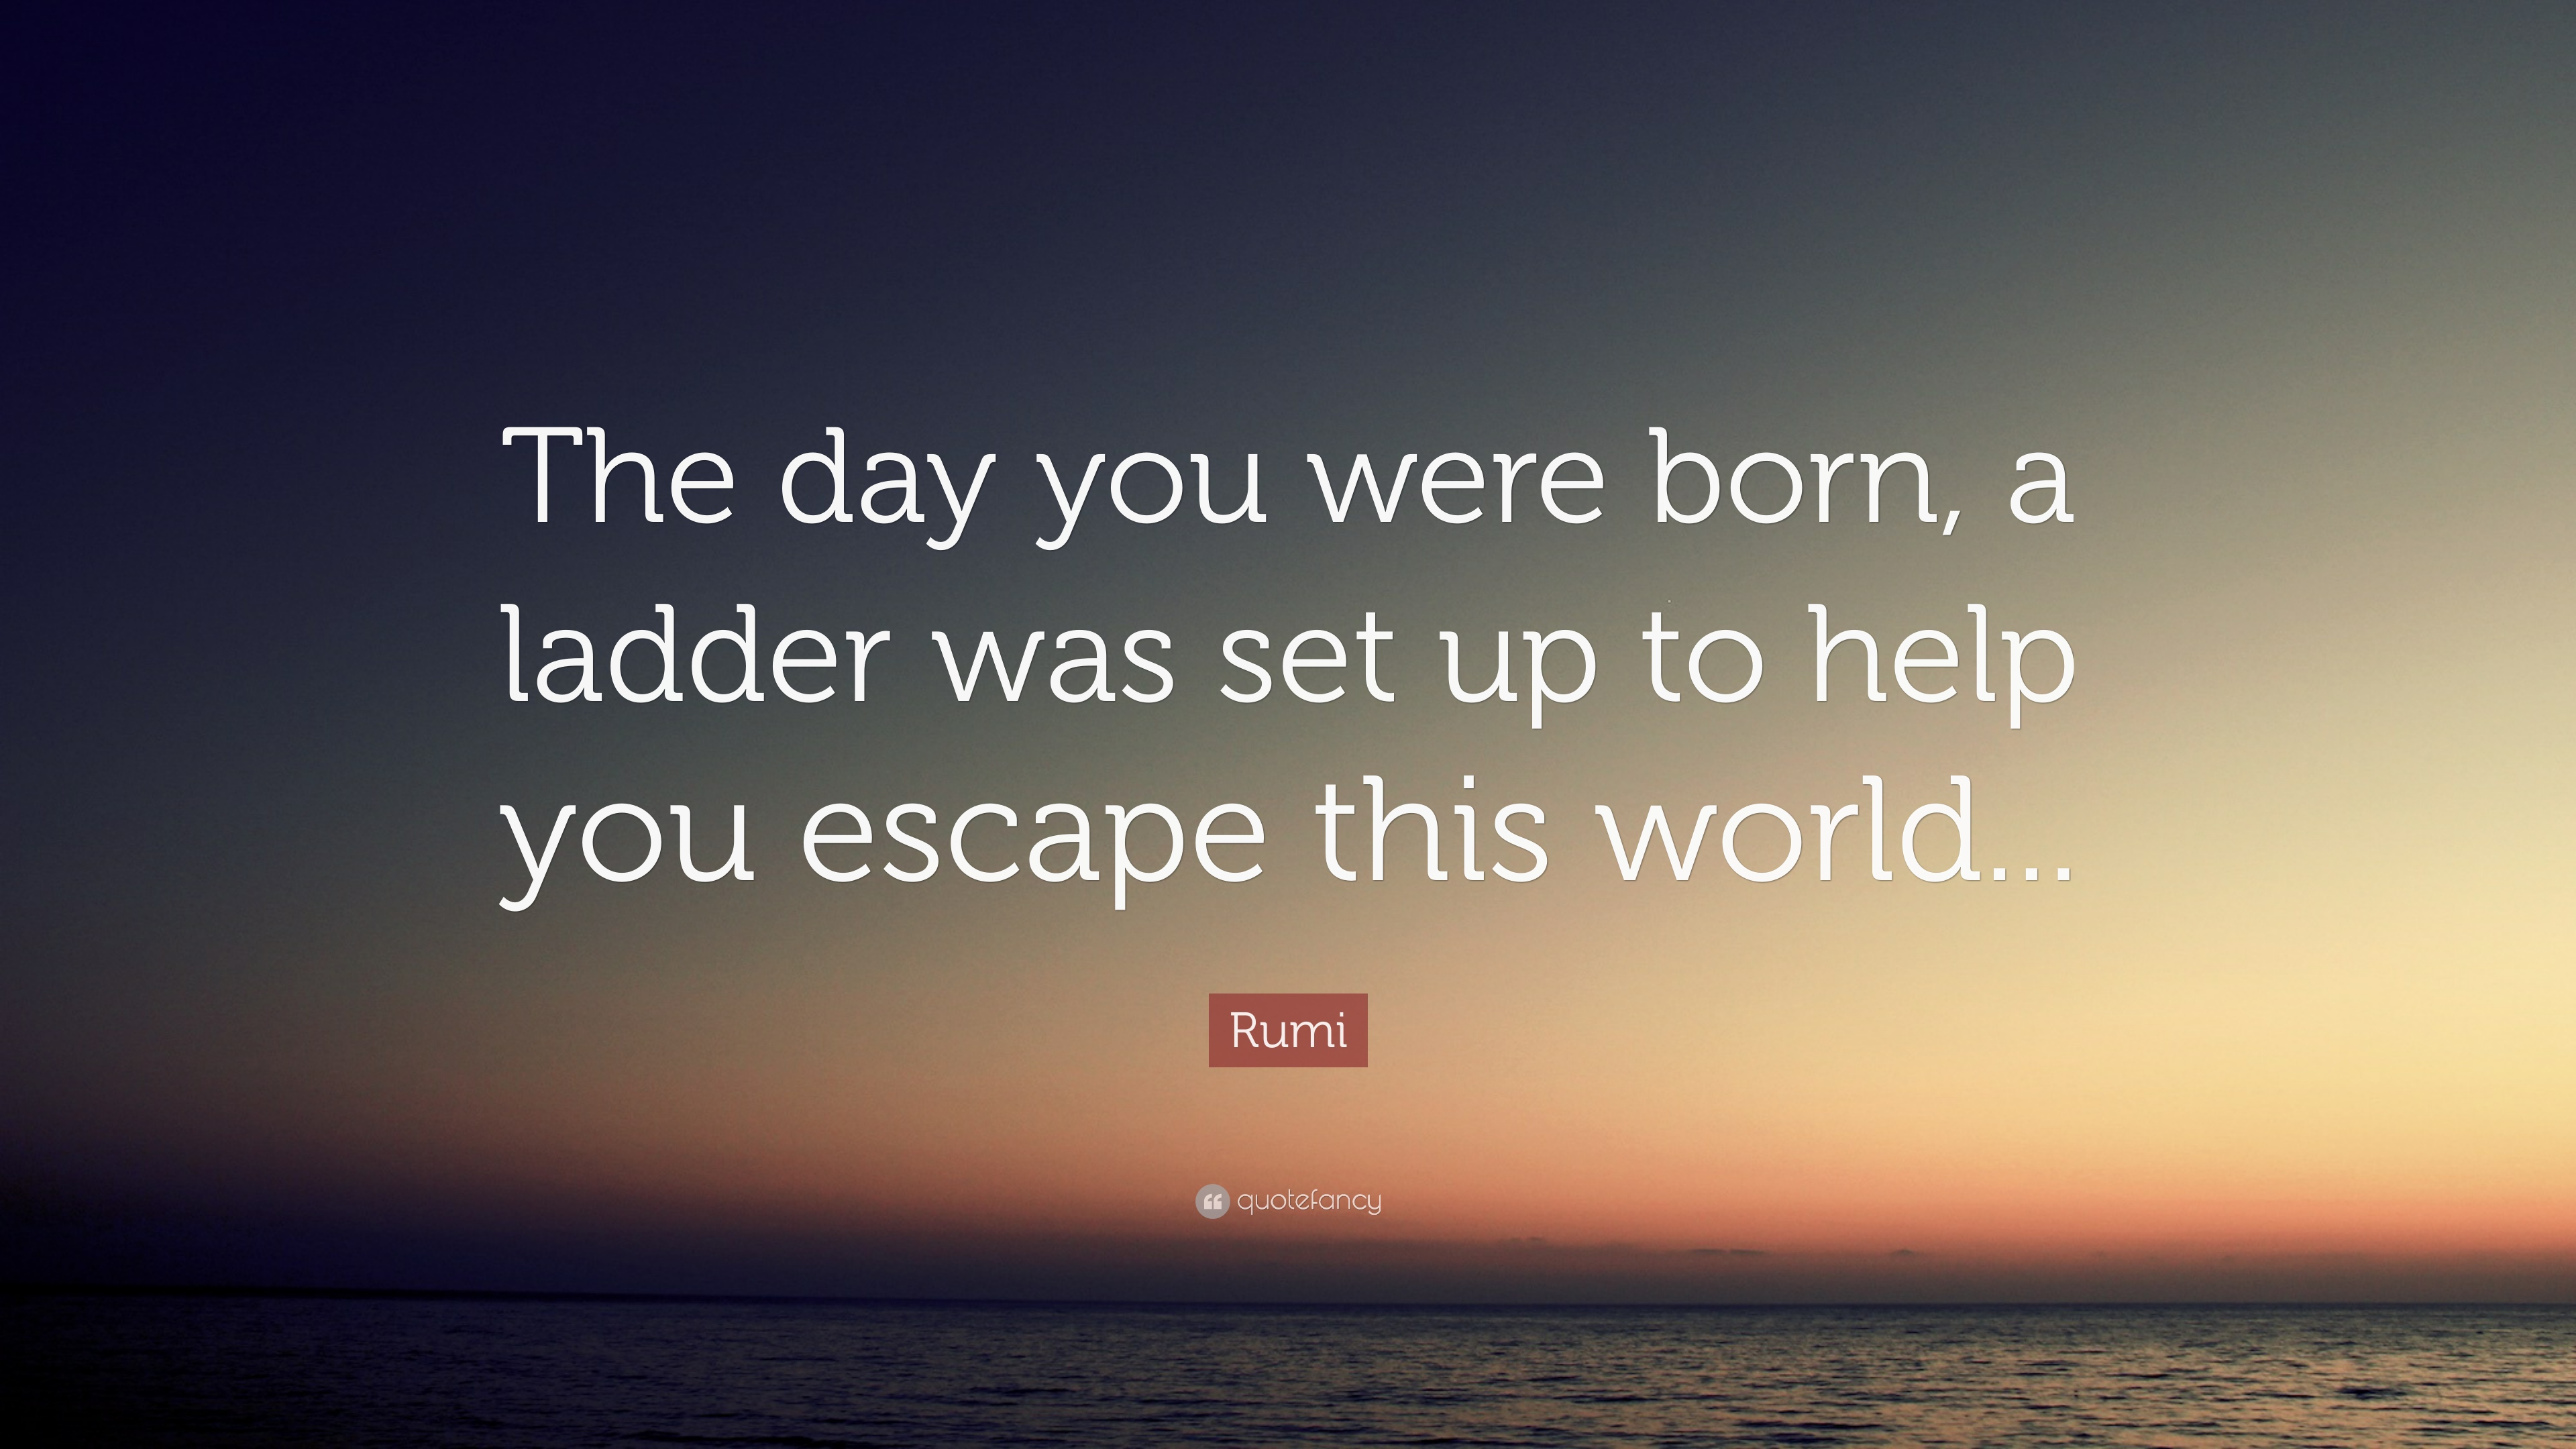 Rumi Quote The Day You Were Born A Ladder Was Set Up To Help You